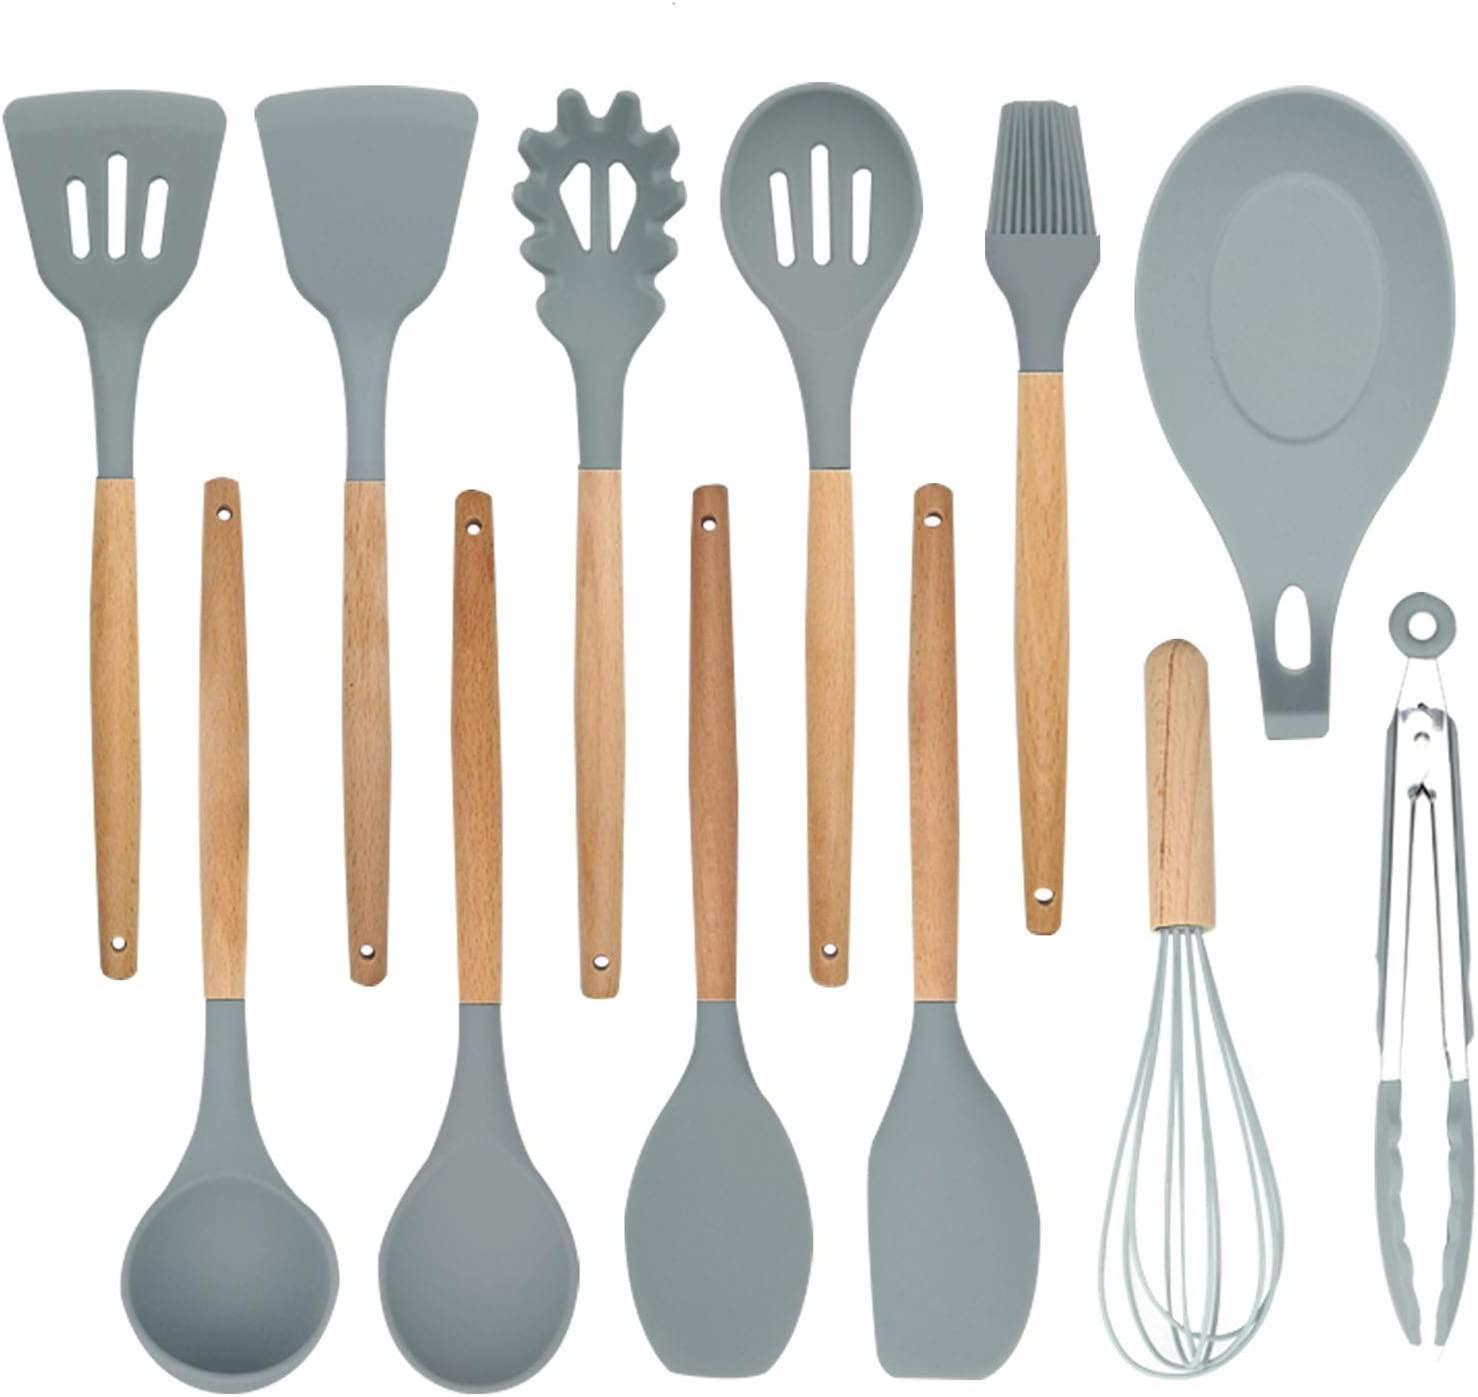 Kitchenware Set with Wooden Handle Non-Stick Sp Silicone Attention Fees free!! brand Spatula